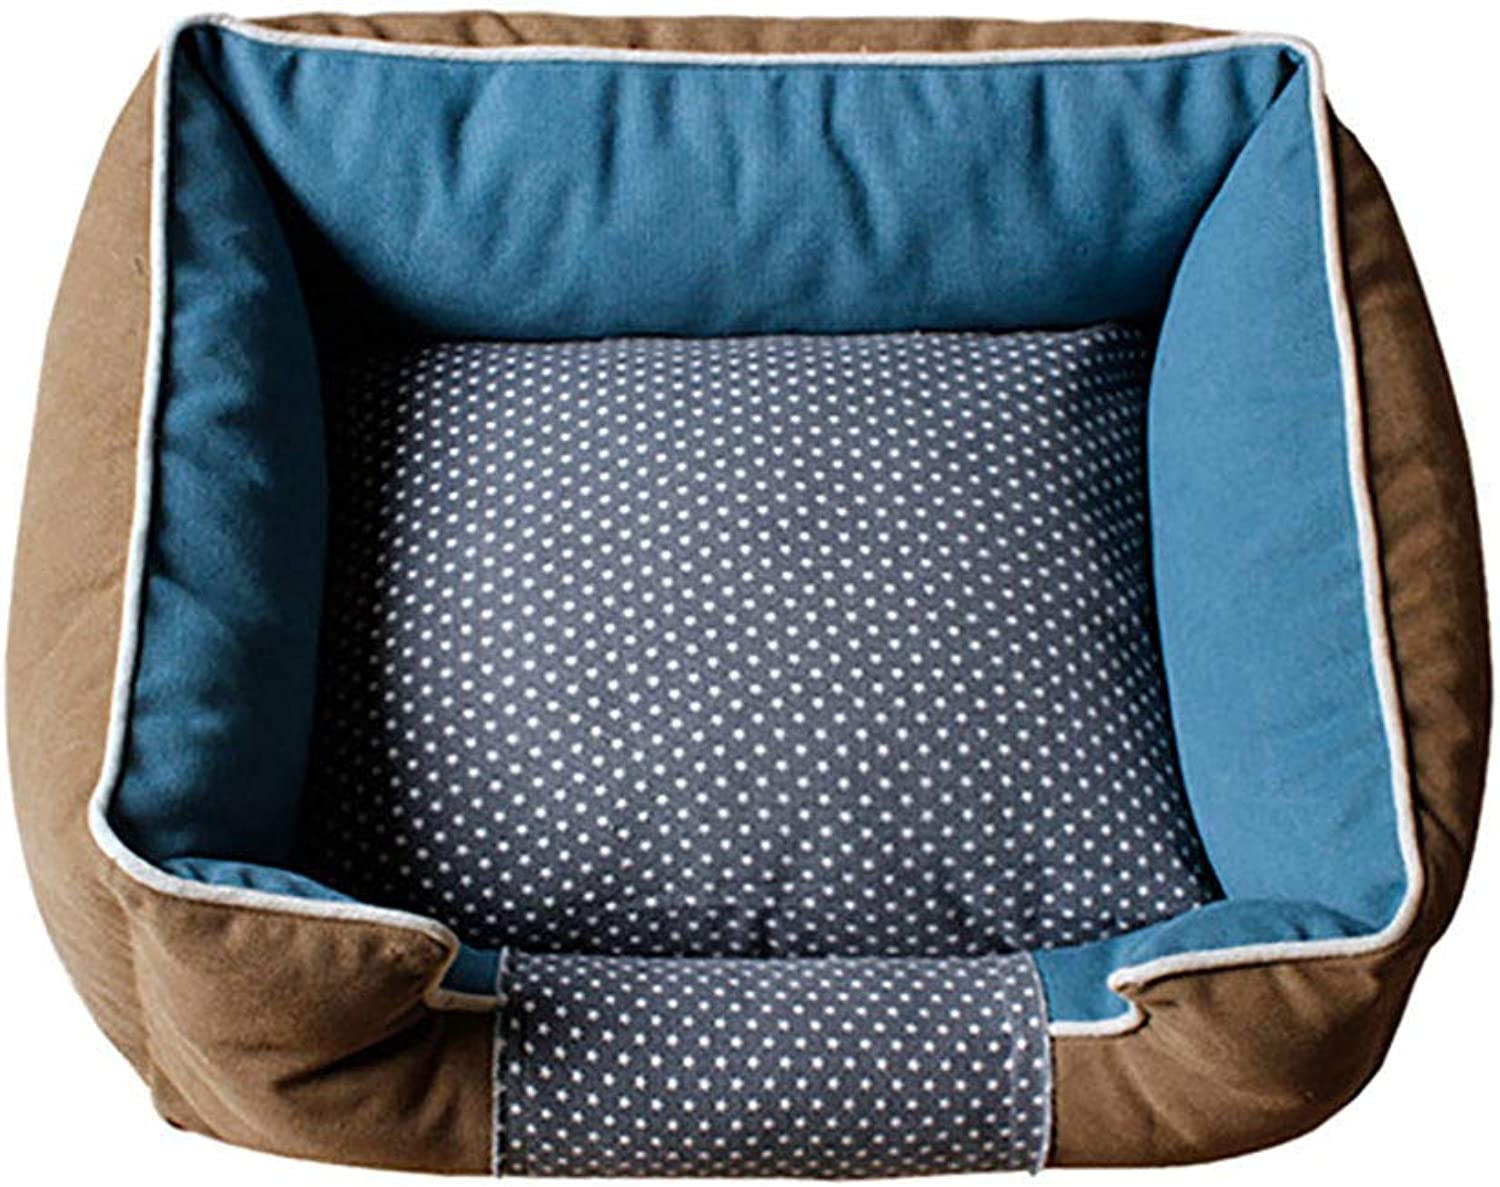 Pet house kennel Washable Large dog Medium dog Small dog pet bed Pet mat Pet nest Warm and comfortable Four seasons available (Size   50  40  17)